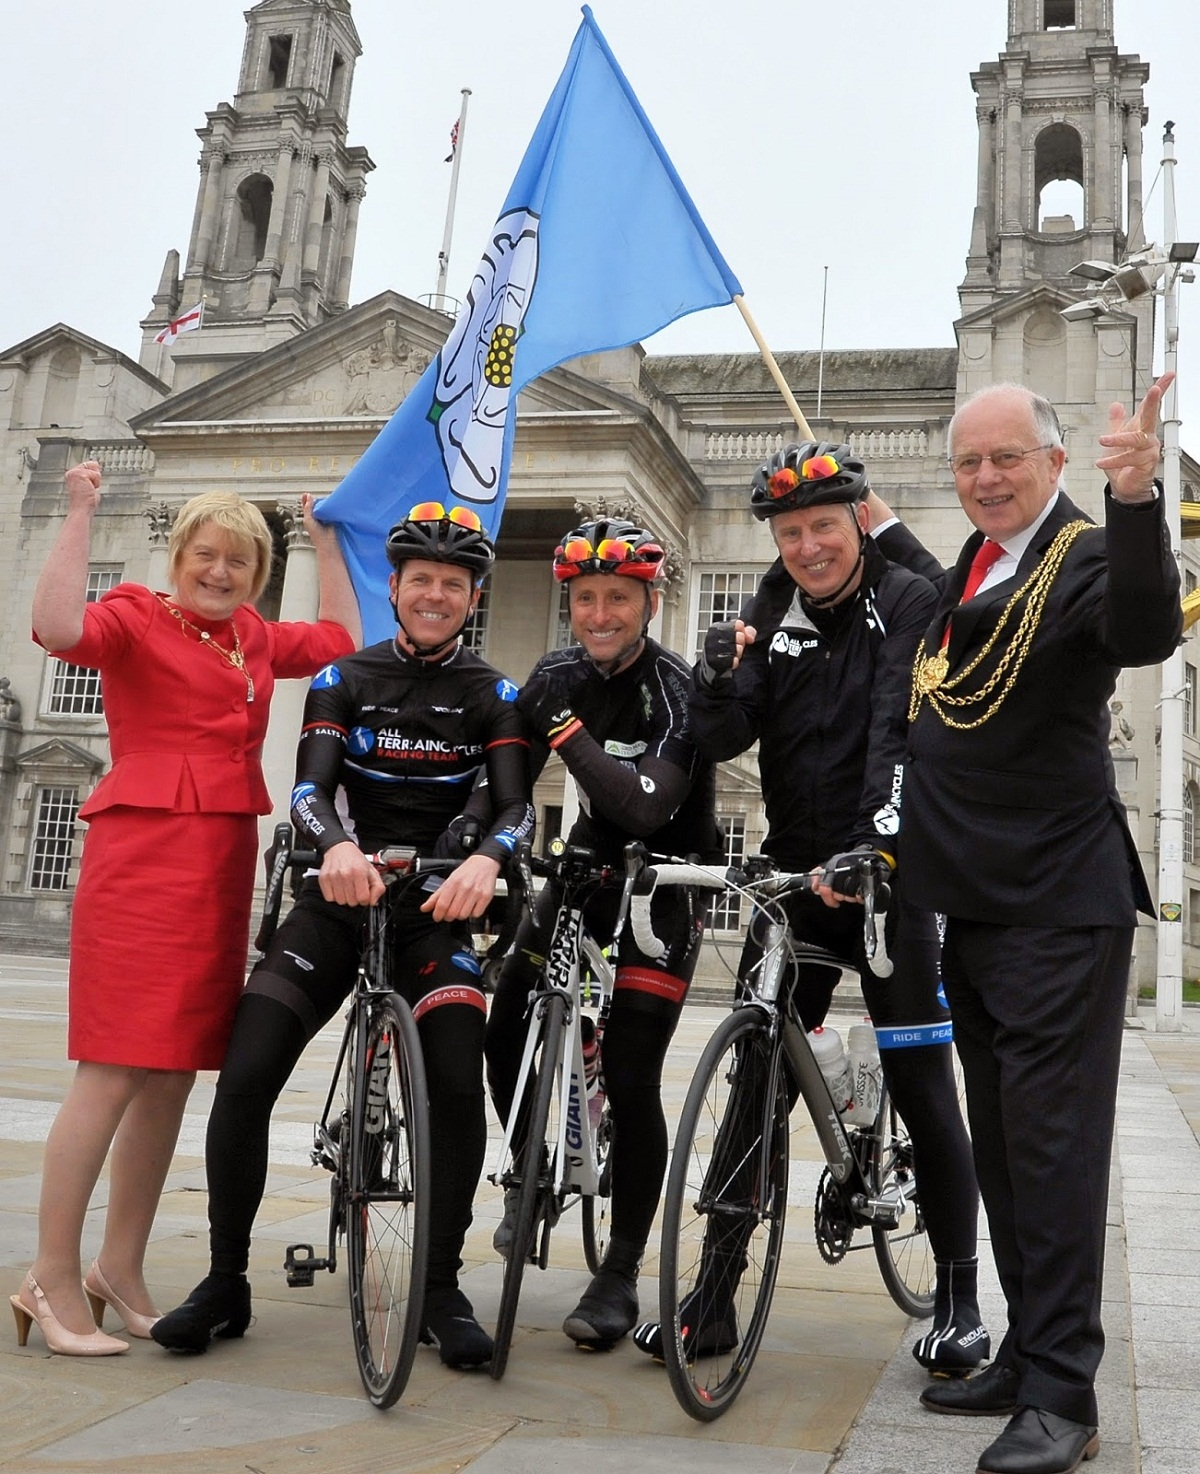 Riders Iain Harris, Andy North and Ben Wood with the Lady Mayoress Edna Murray and the Lord Mayor of Leeds Councillor Thomas Murray, before starting their journey to Dortmund